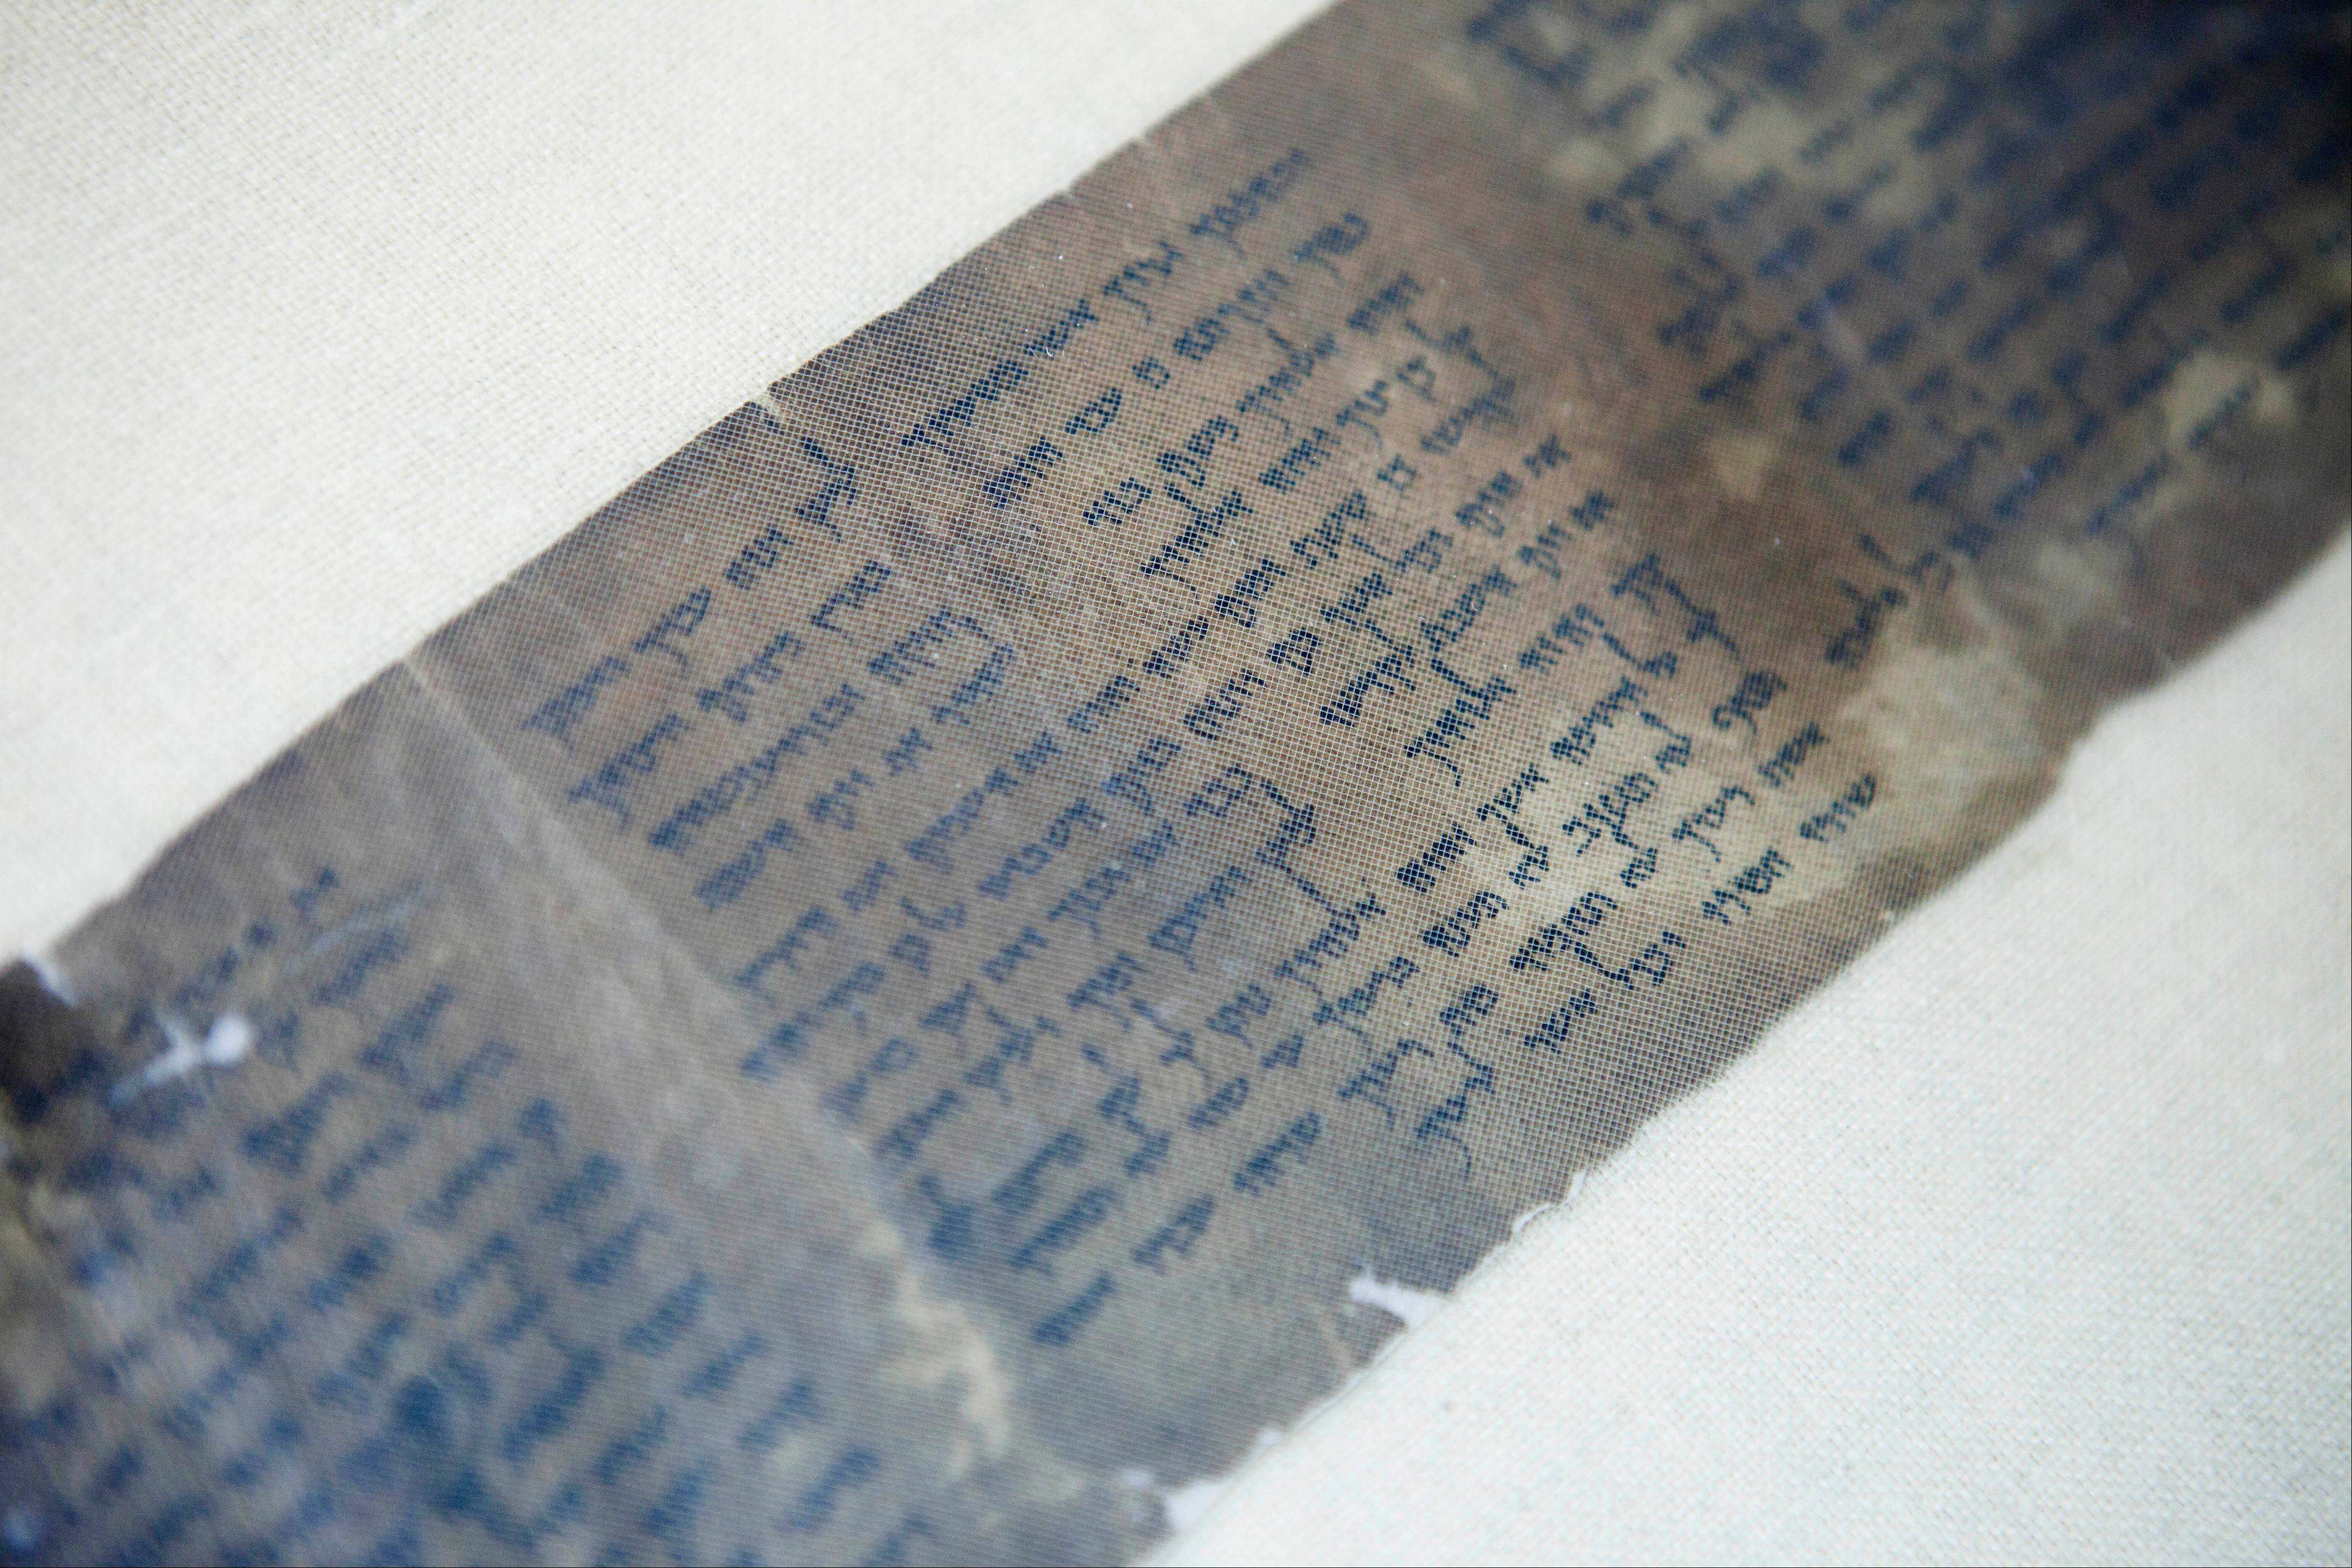 The ten commandments is written on one of the Dead Sea Scrolls in Jerusalem. Nearly 70 years after the discovery of the world�s oldest biblical manuscripts, the Palestinian family who originally sold them to scholars and institutions is now quietly marketing the leftovers.